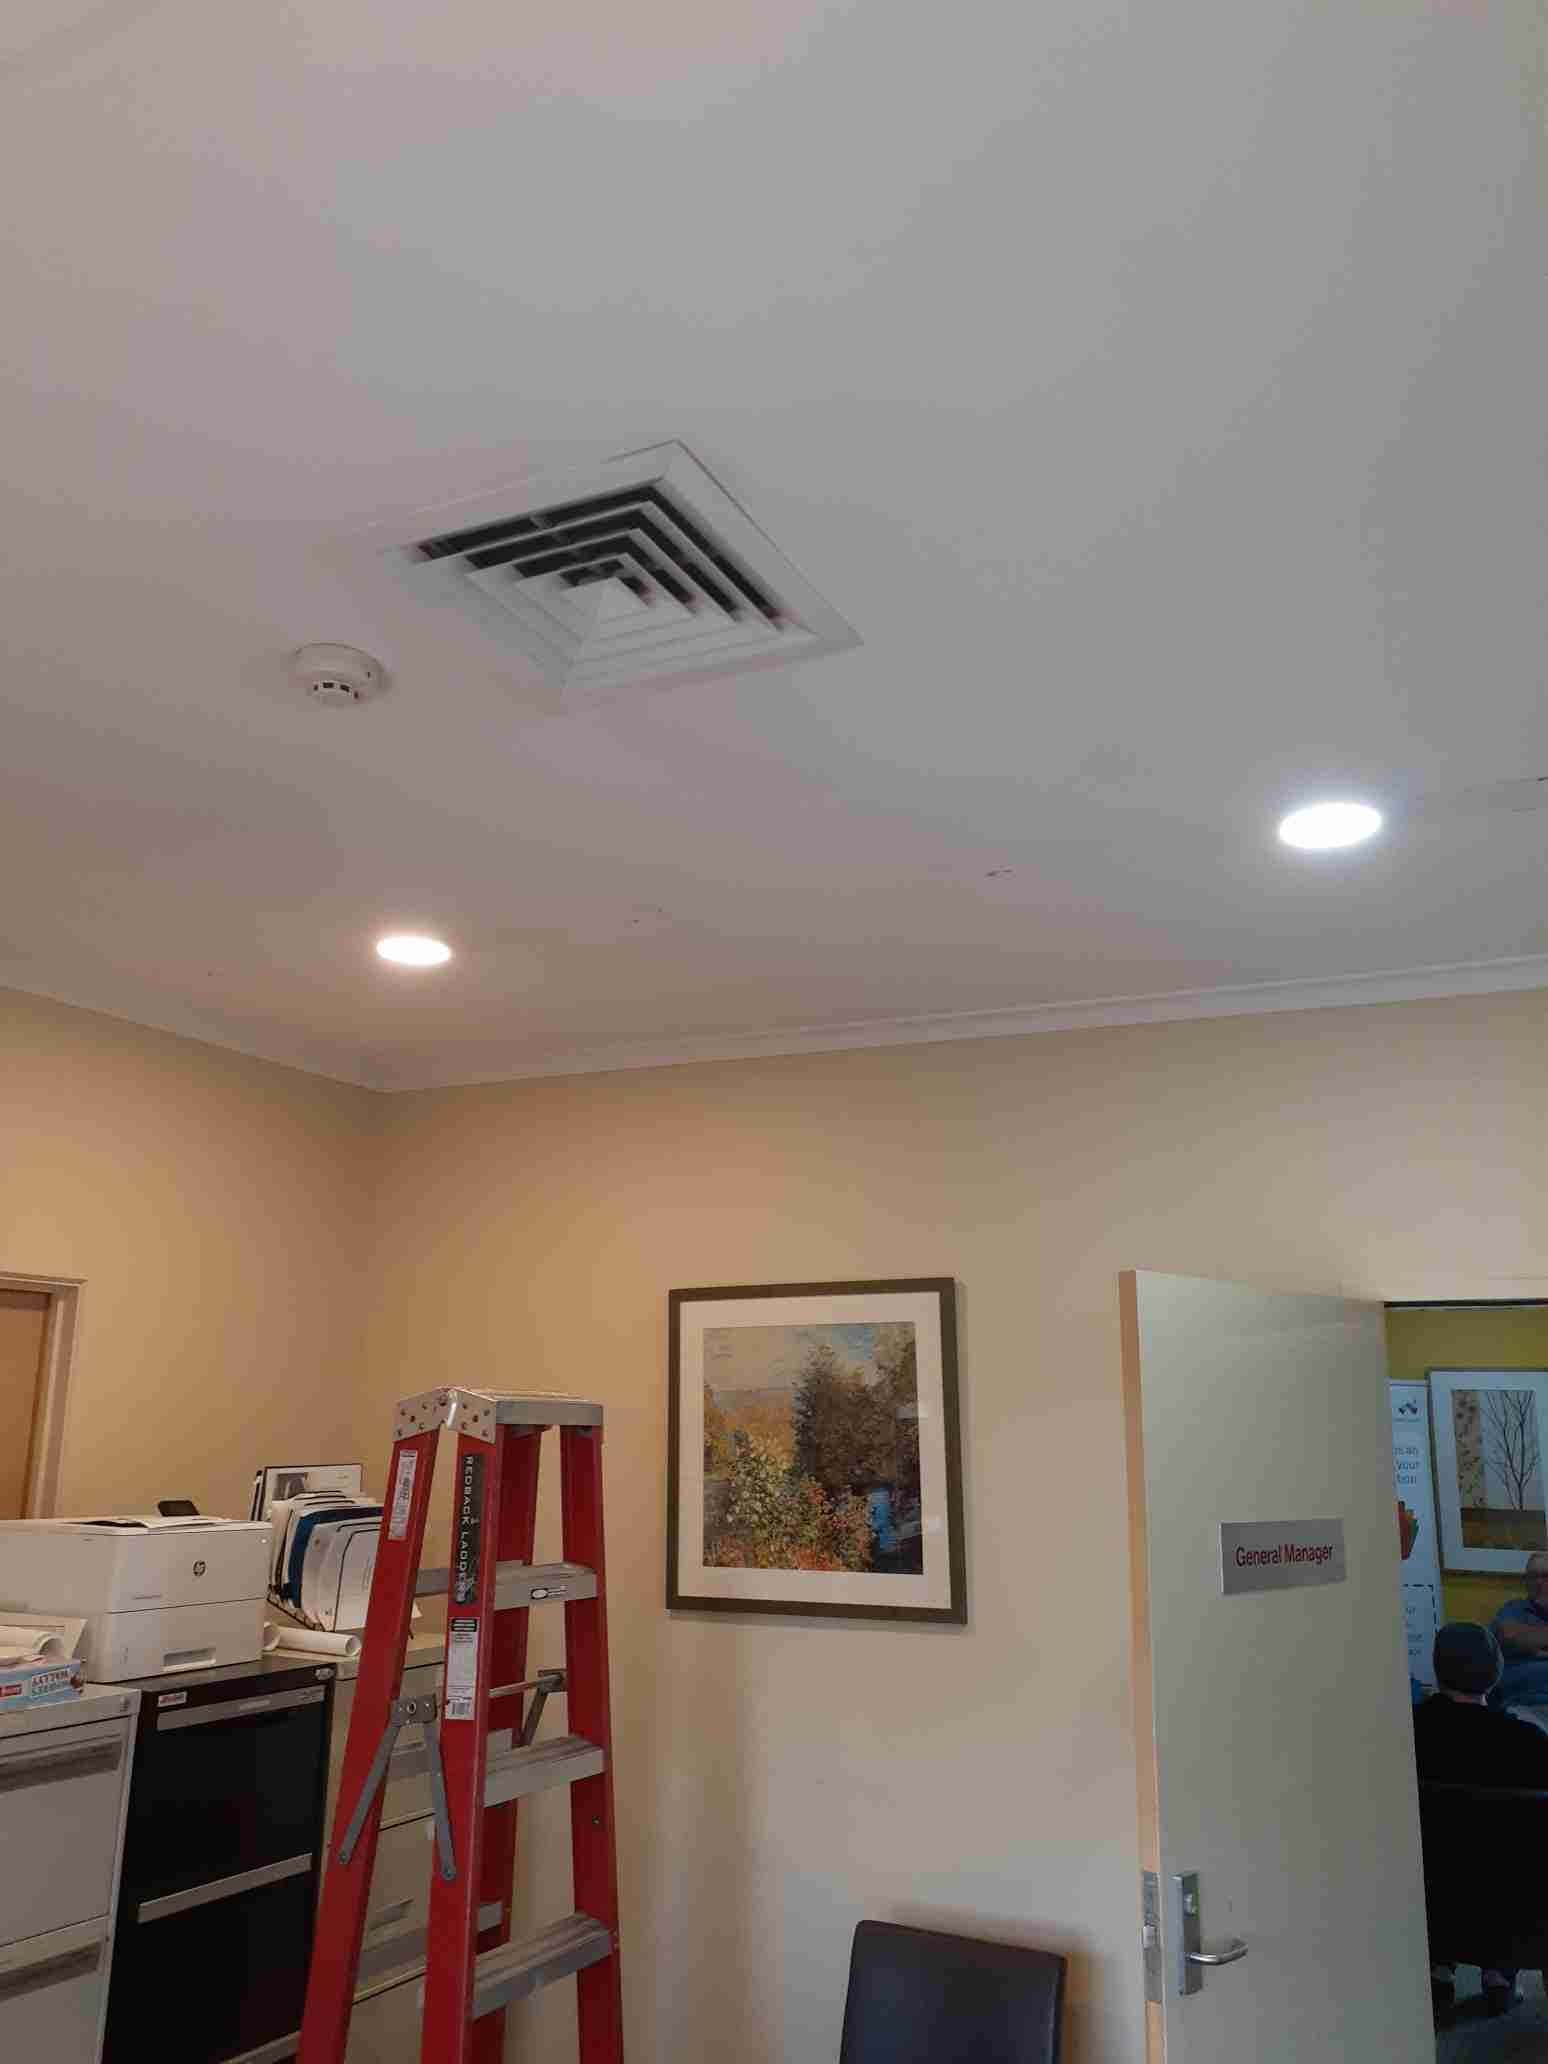 Electrical Installation - Lighting - Whittington By Mr. Electric of Geelong via i4Tradies